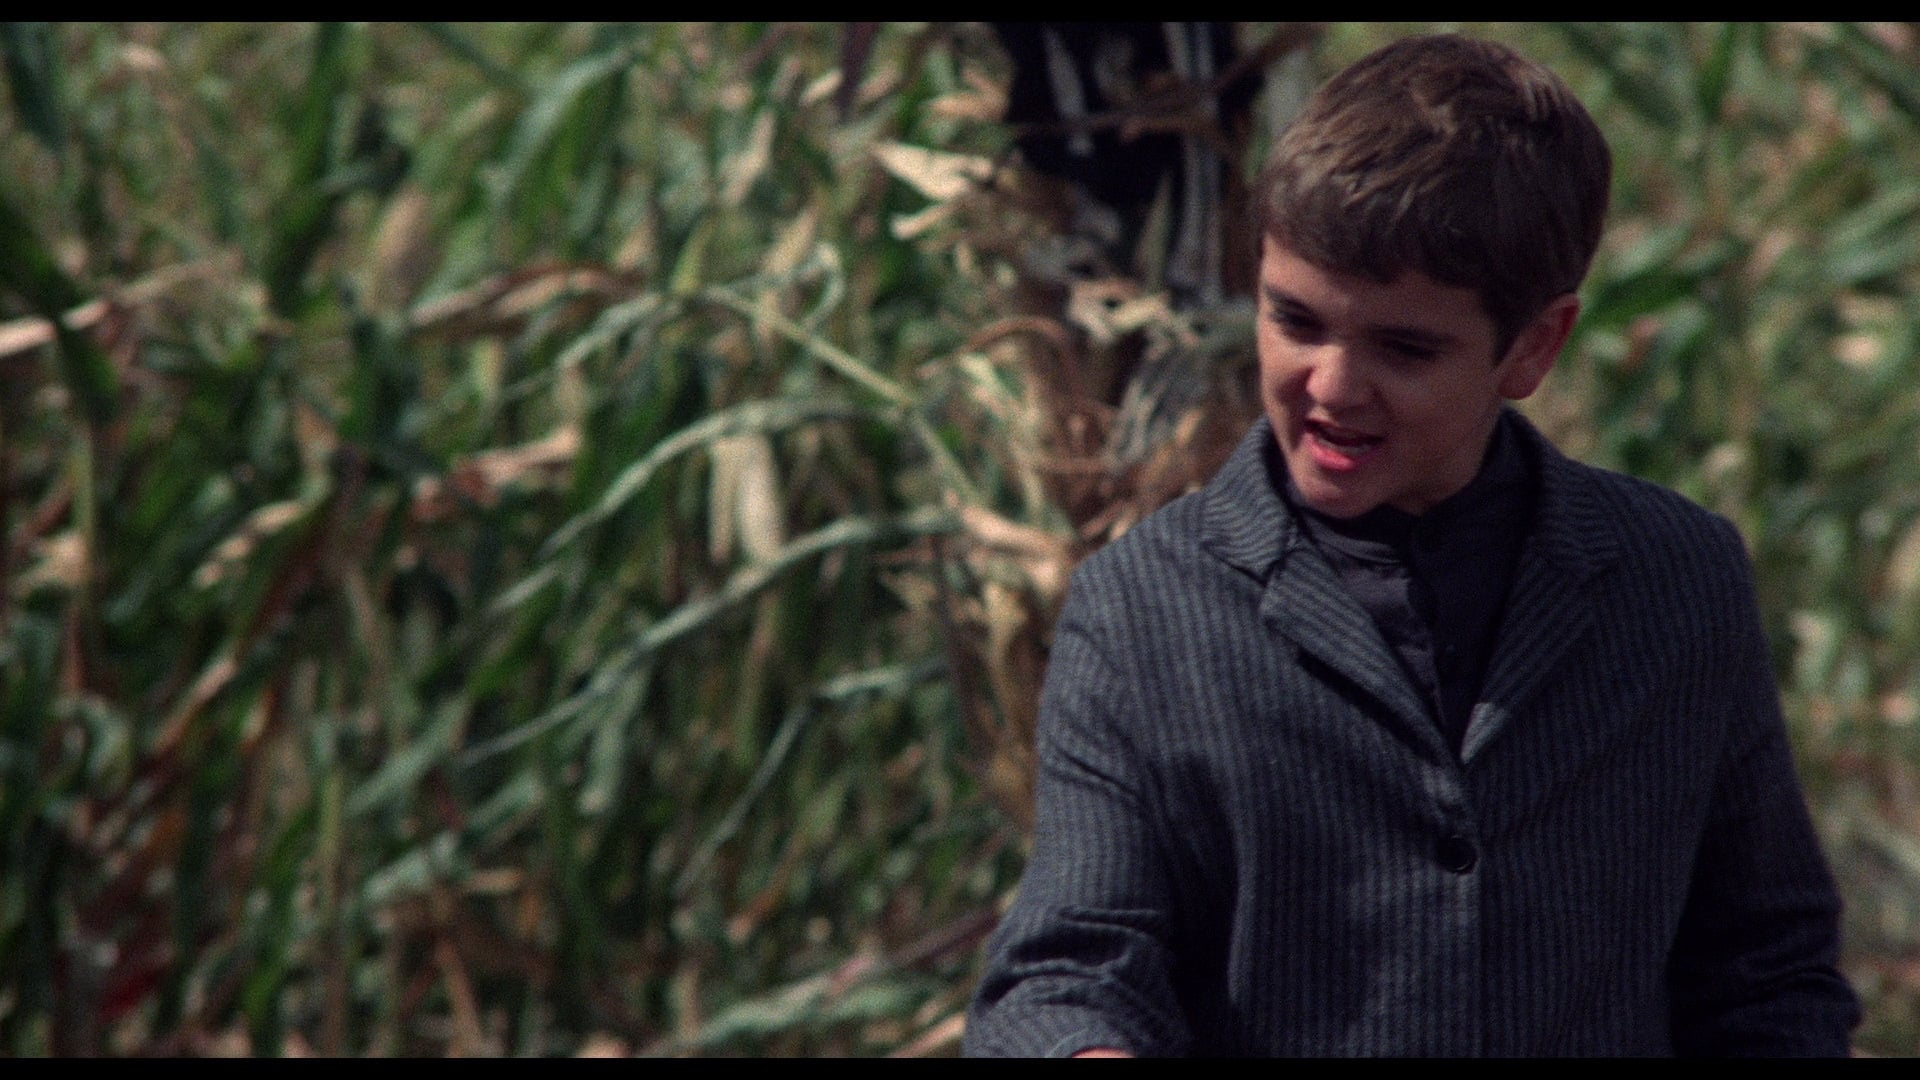 Children of the Corn (1984) - AZ Movies